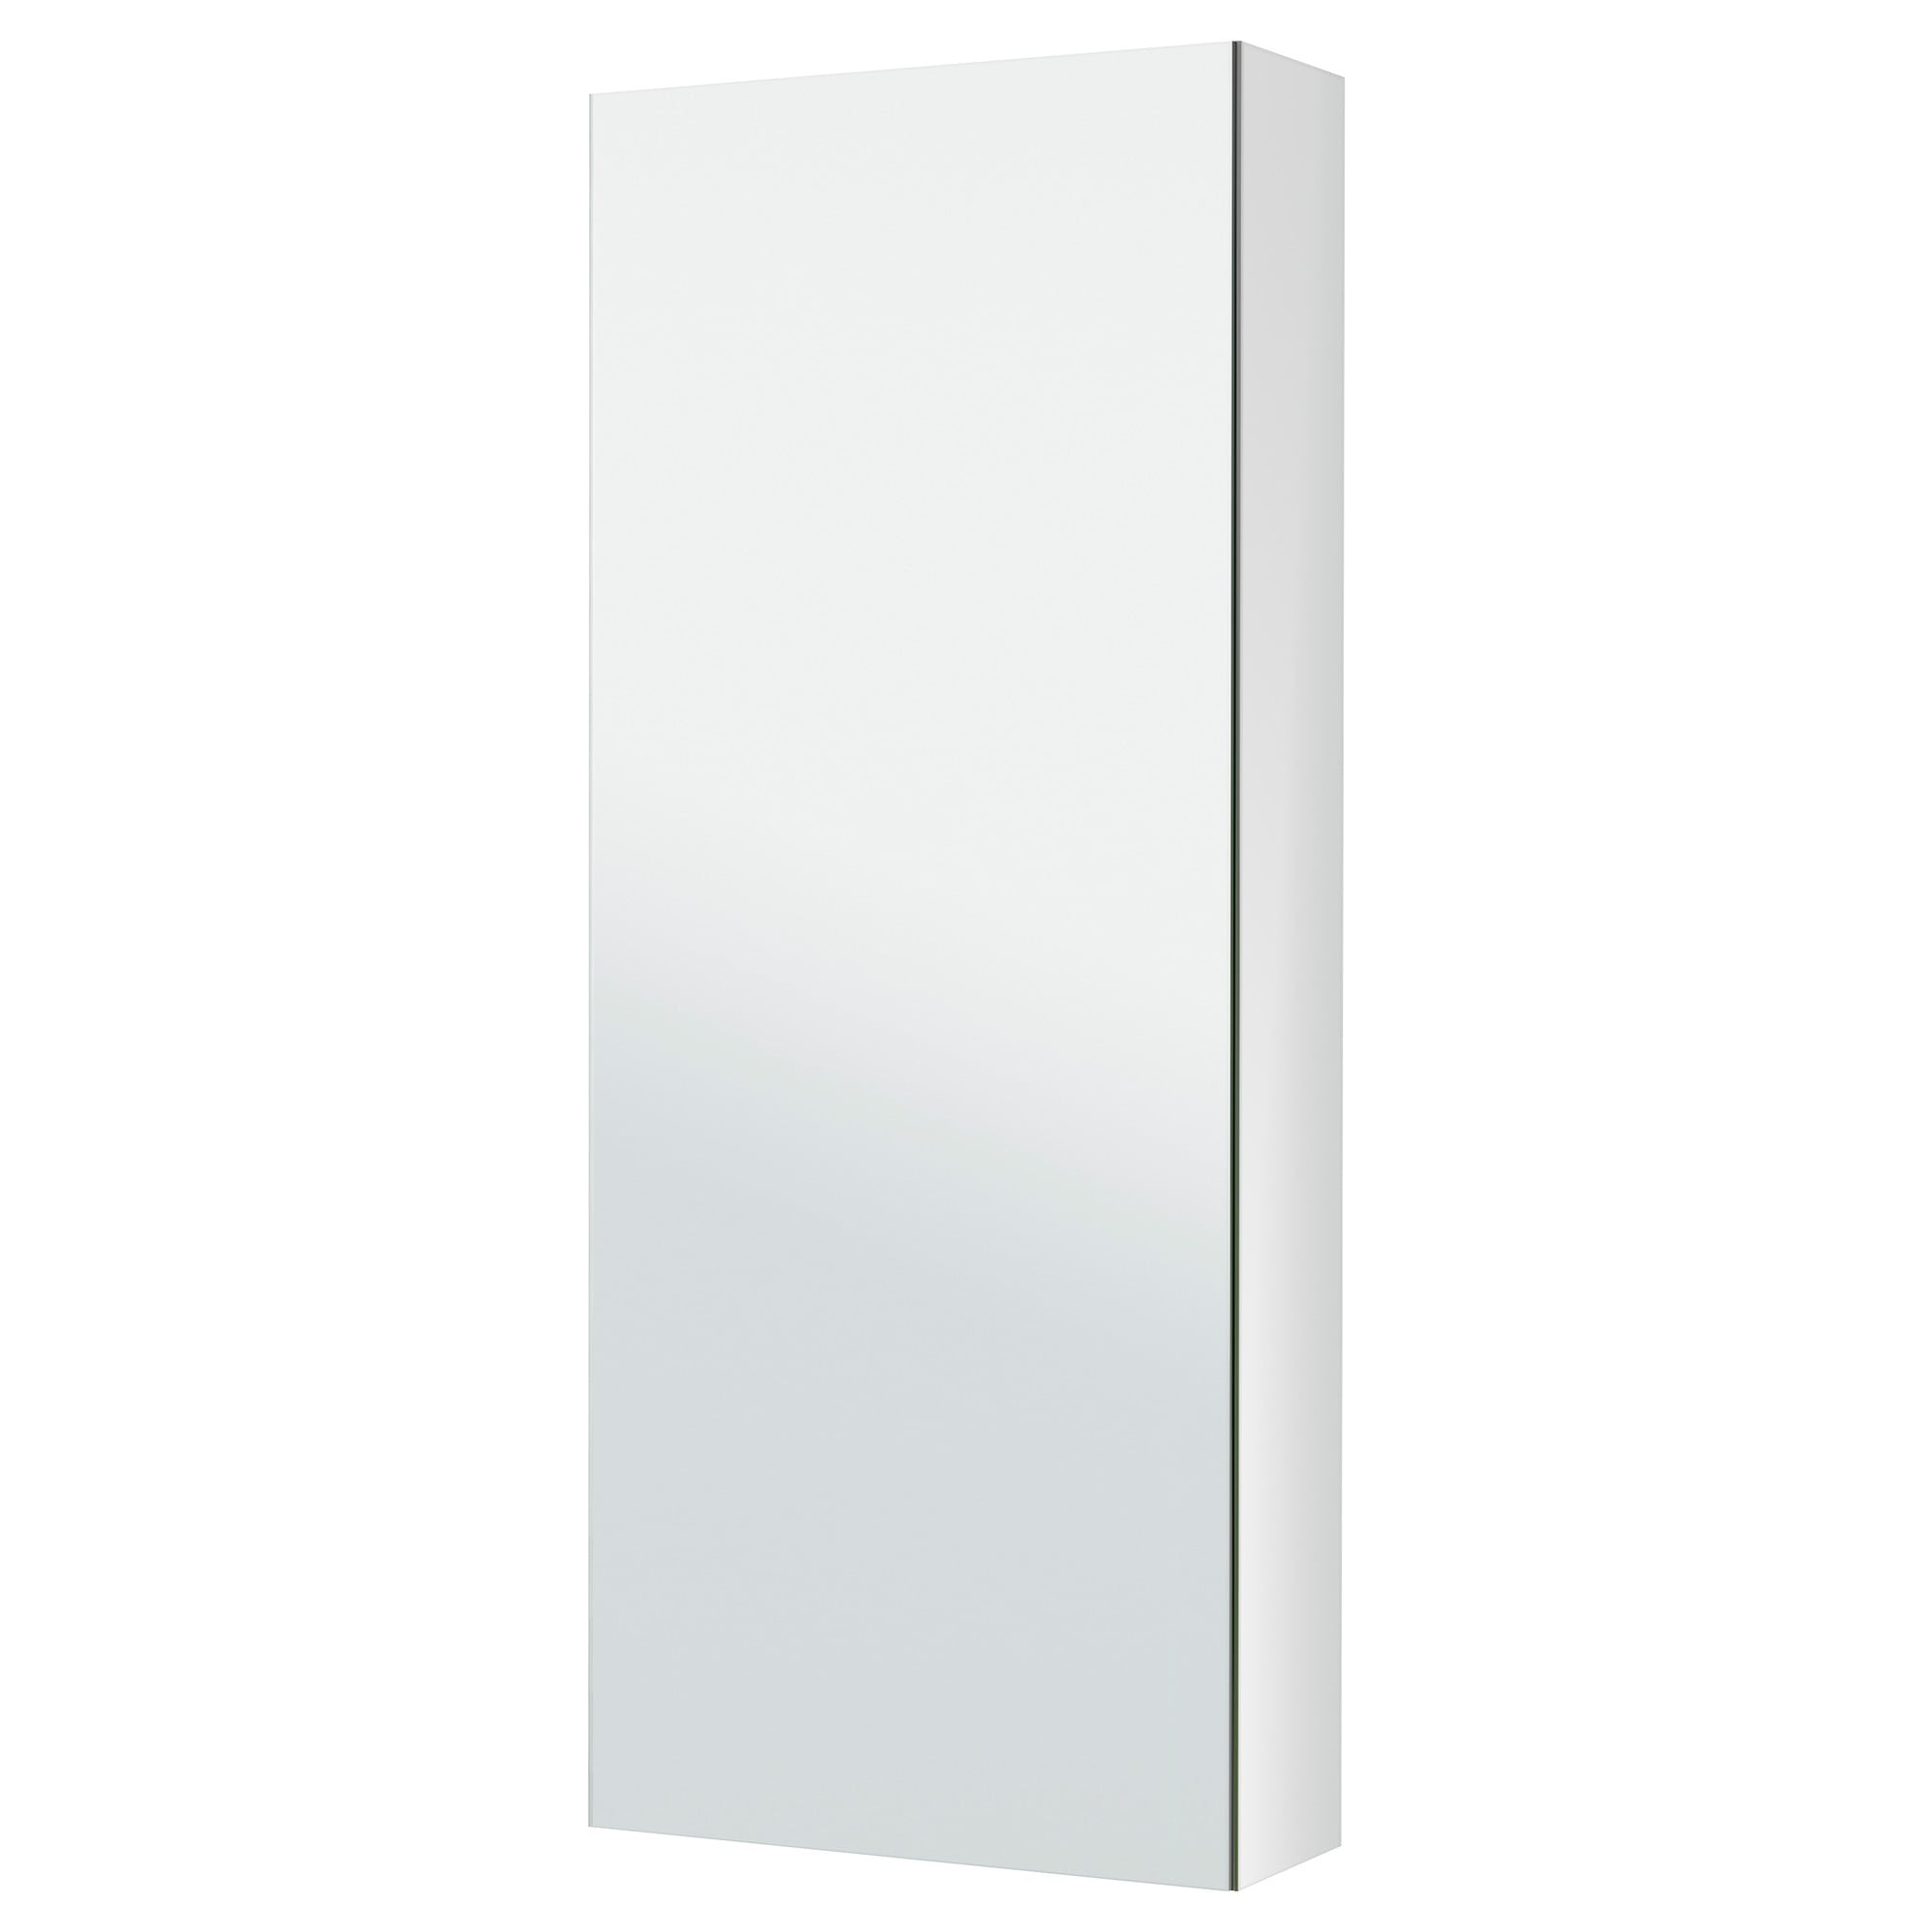 Ikea godmorgon tall cabinet for Bathroom cabinets 40cm wide